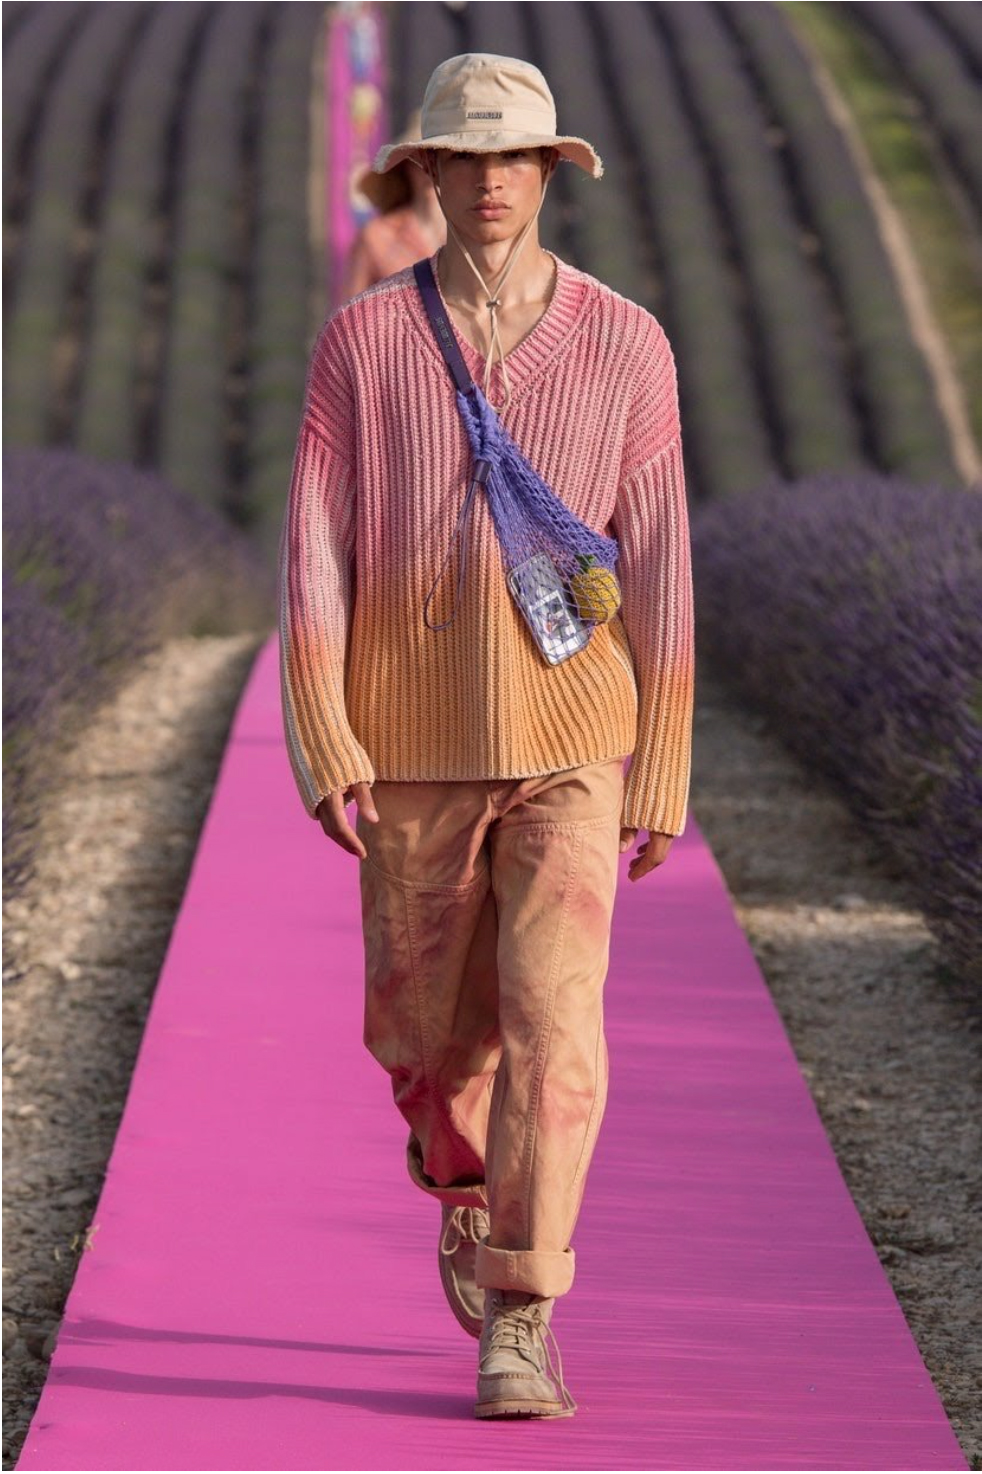 TENDANCE-TIE-DYE-JACQUEMUS-RELEASED-PARIS